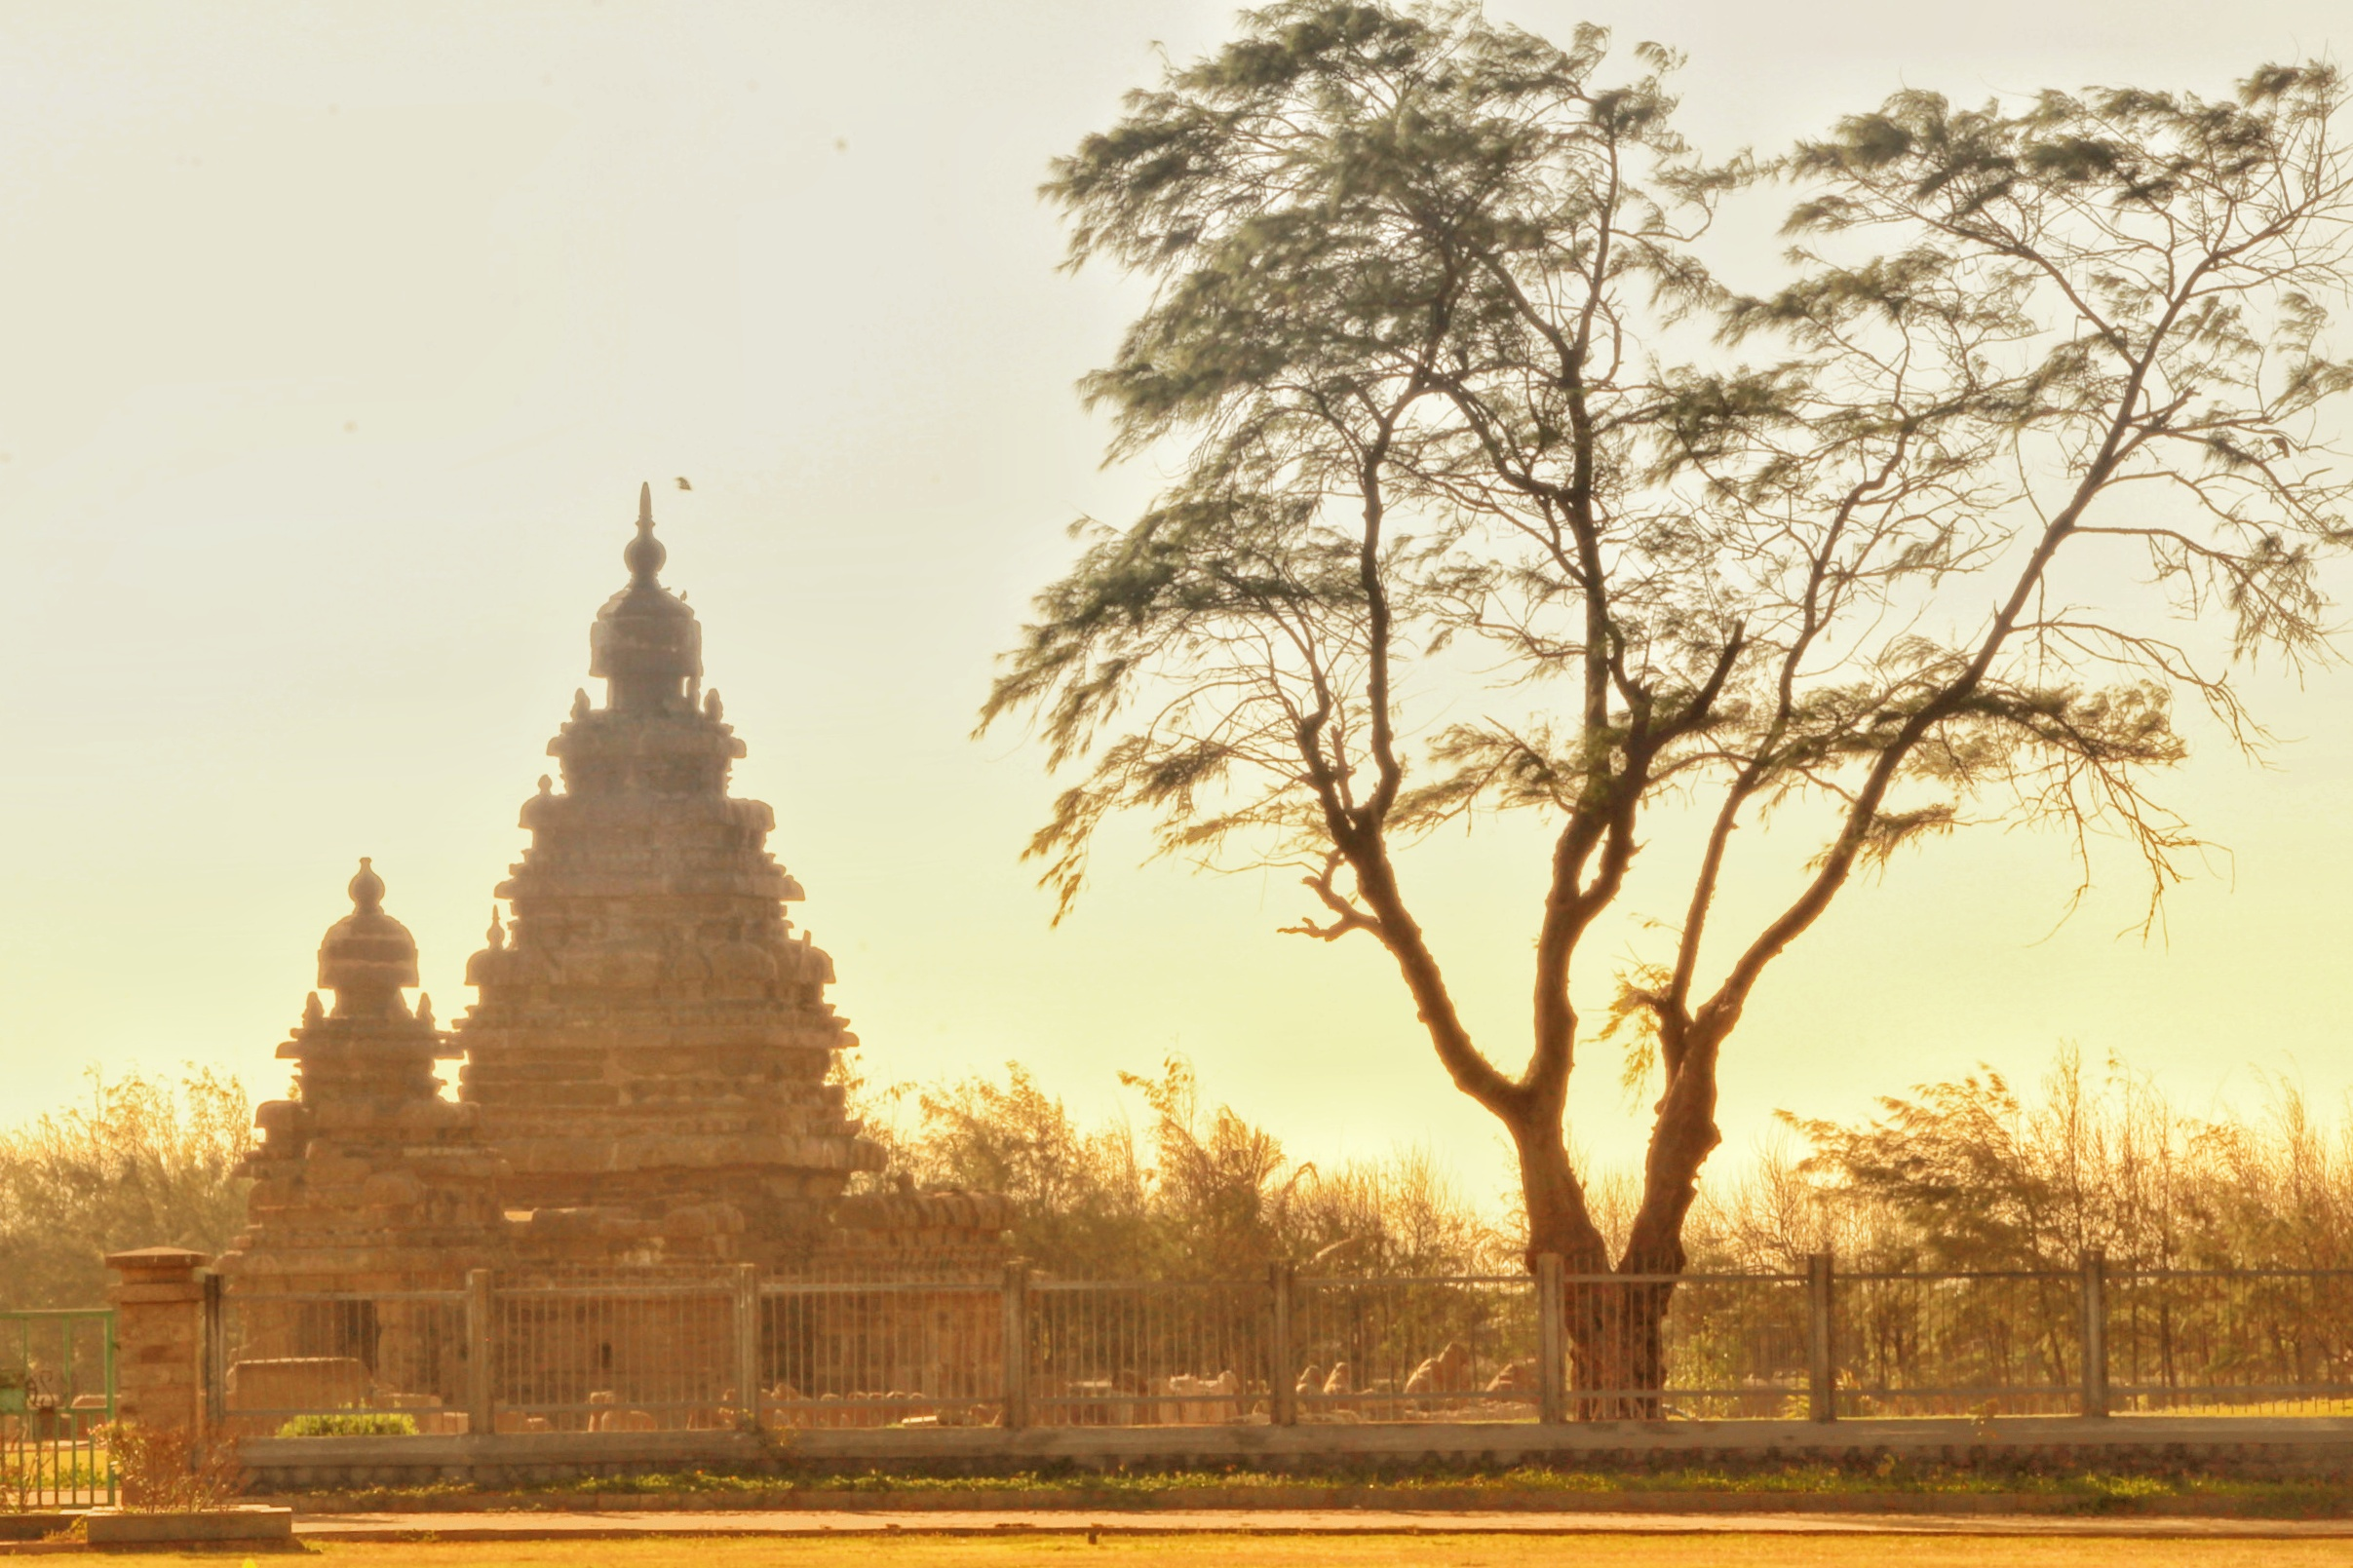 Landmark of Madras - Mamallapuram Shore Temple